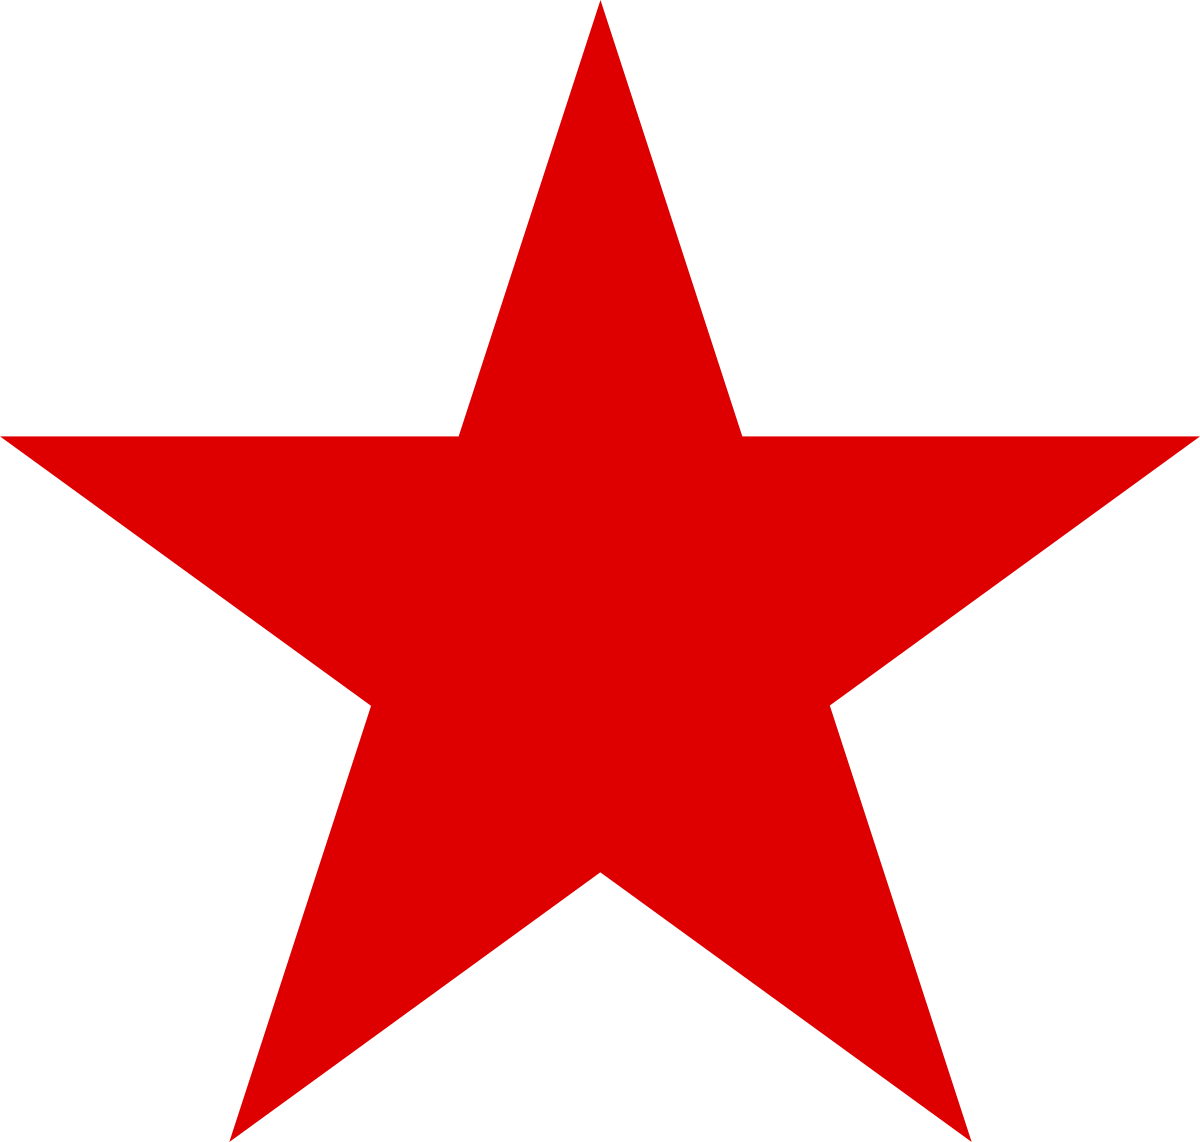 1200px-Red_star_svg.png.3130ec1ca9ee2263ac5dd795cd9e8627.png